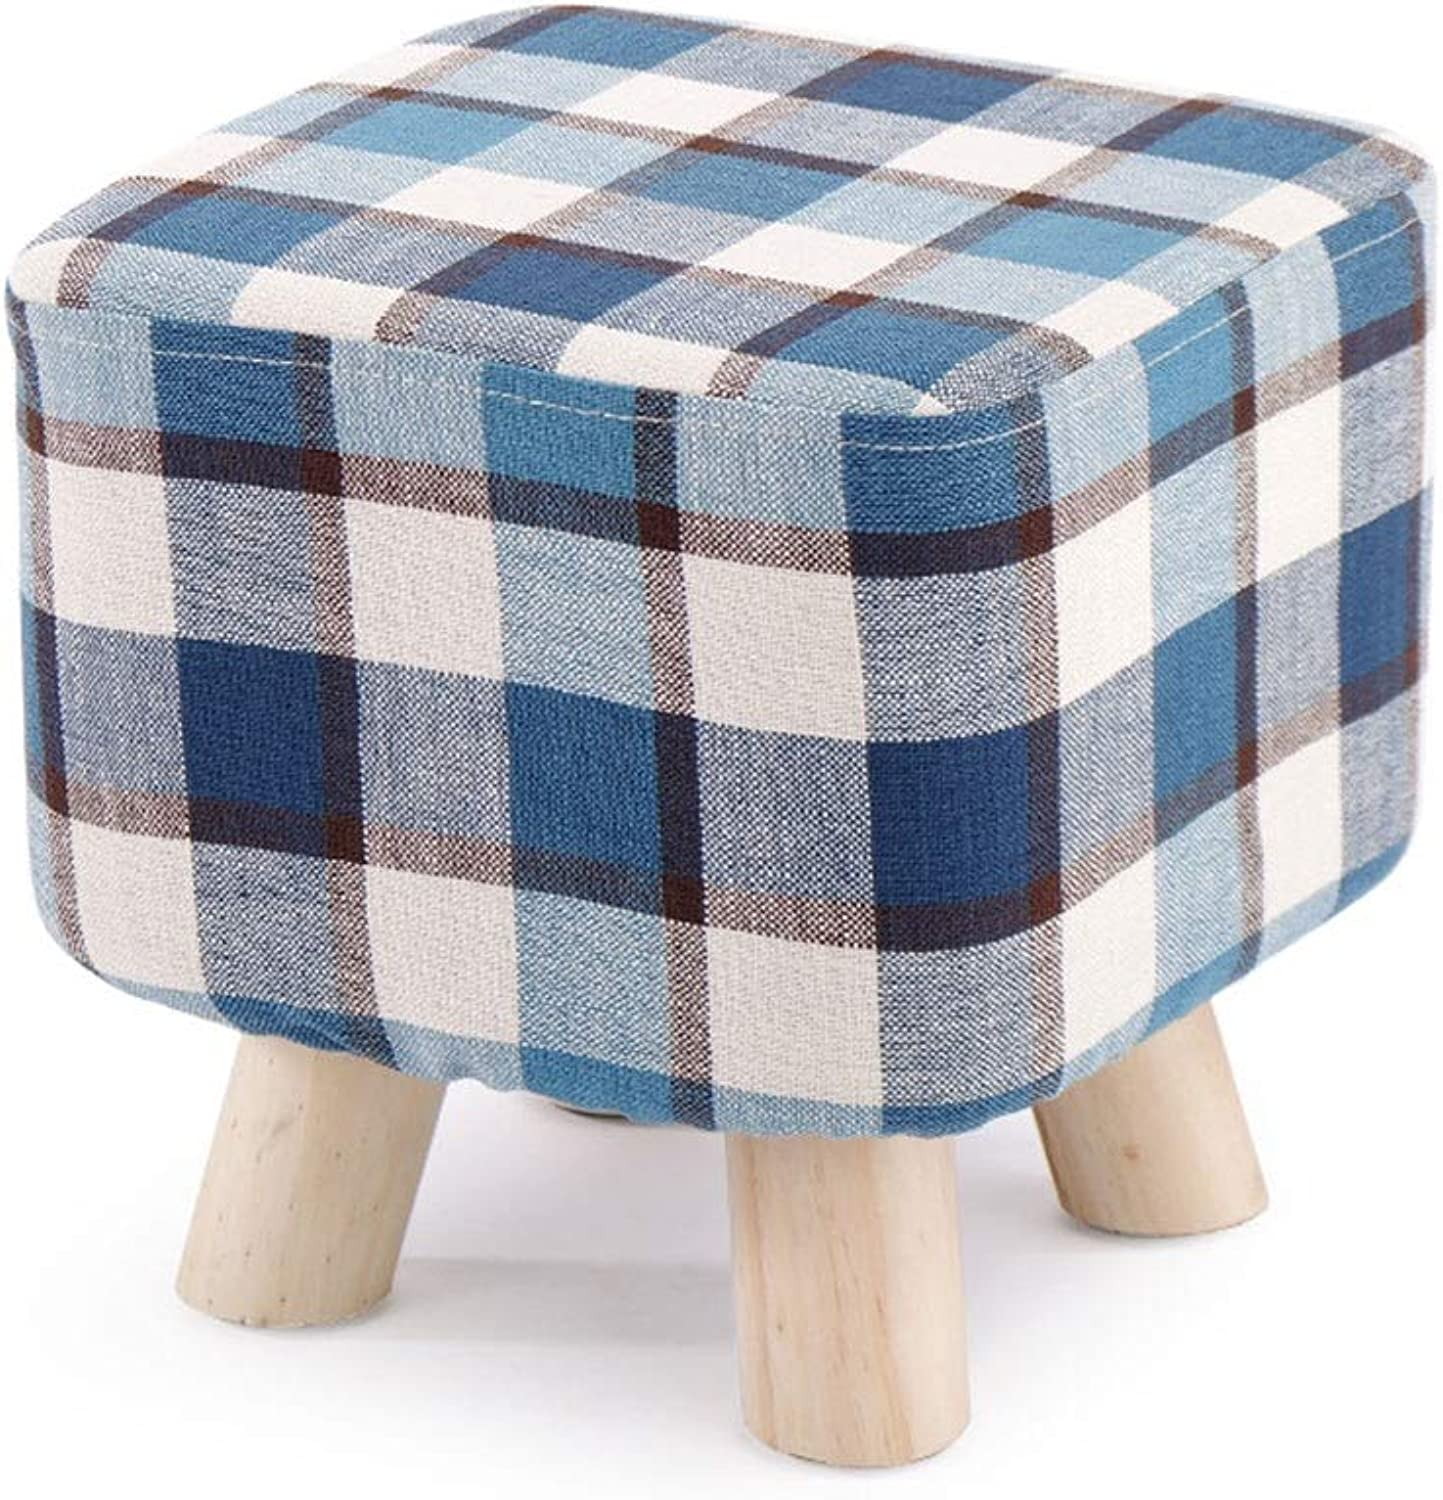 Zcxbhd Fashion Solid Wood Stool Creative Fabric Stool Home Non-Slip with Non-Slip Mat Footstool Load 150kg About (color   bluee)